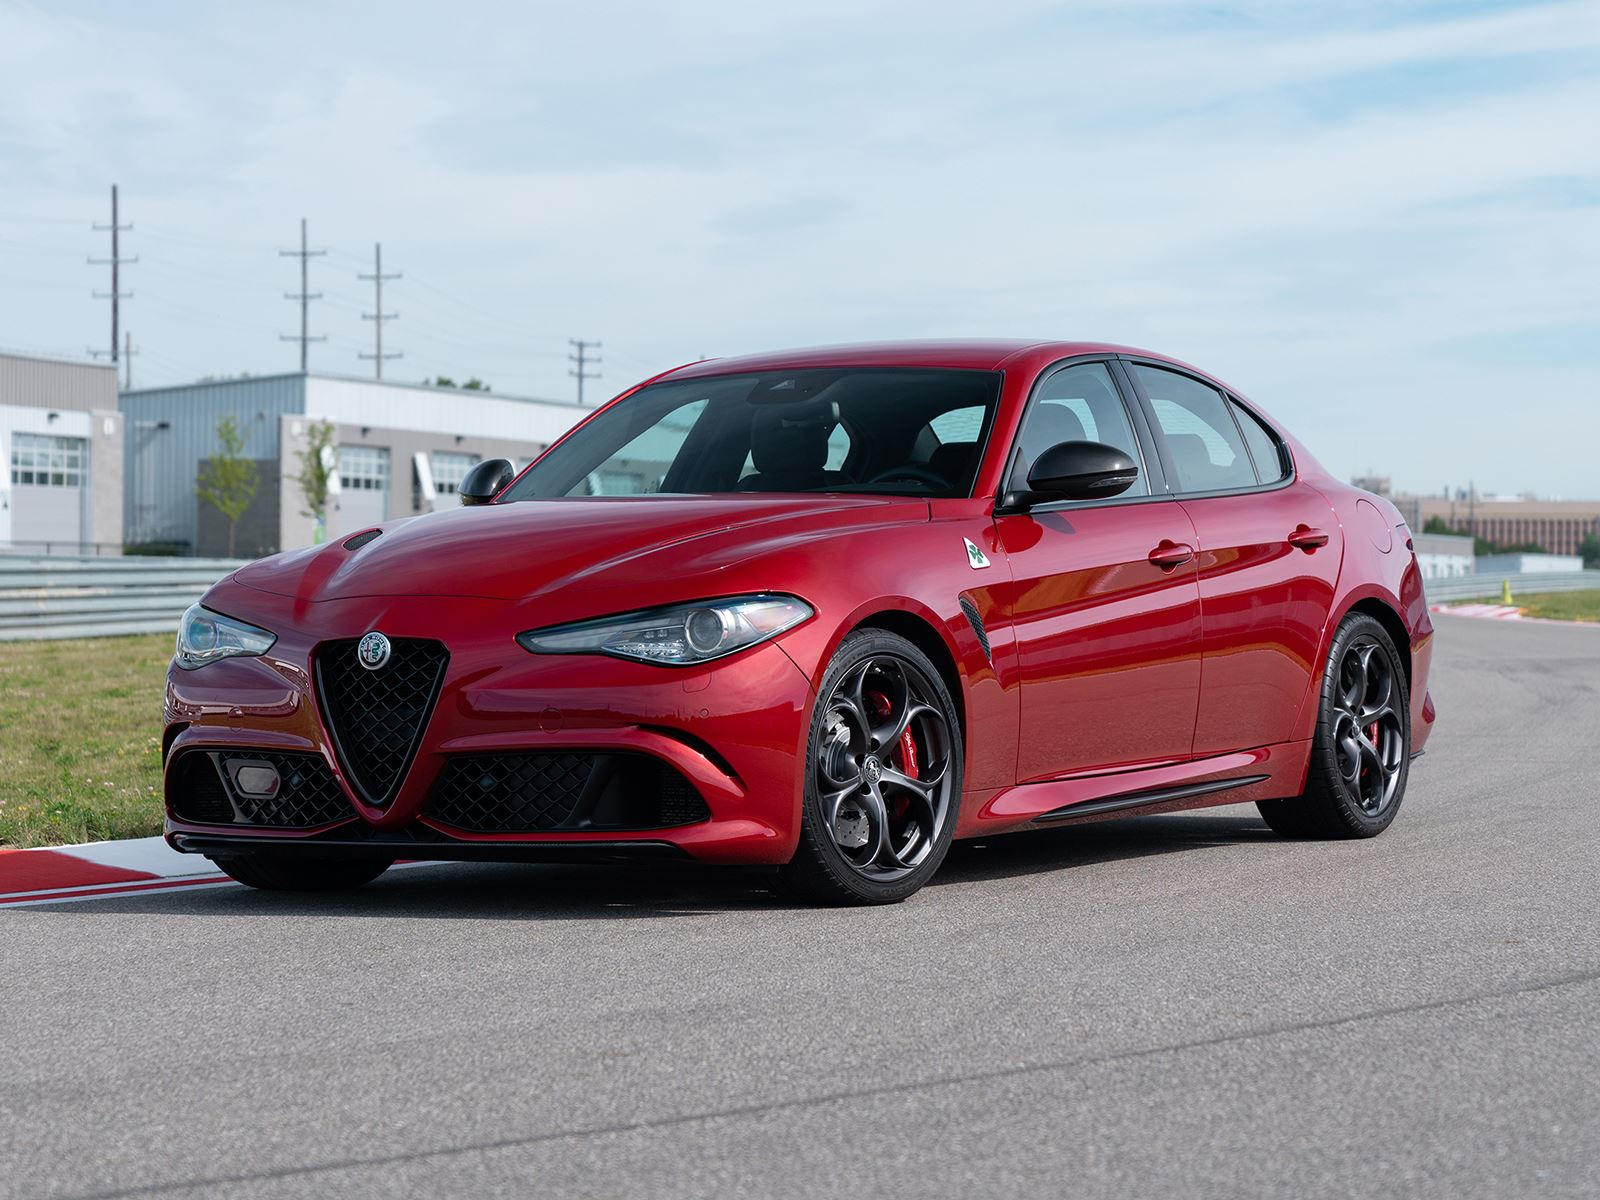 2019 alfa romeo giulia arrives with new sporty styling packages carbuzz. Black Bedroom Furniture Sets. Home Design Ideas